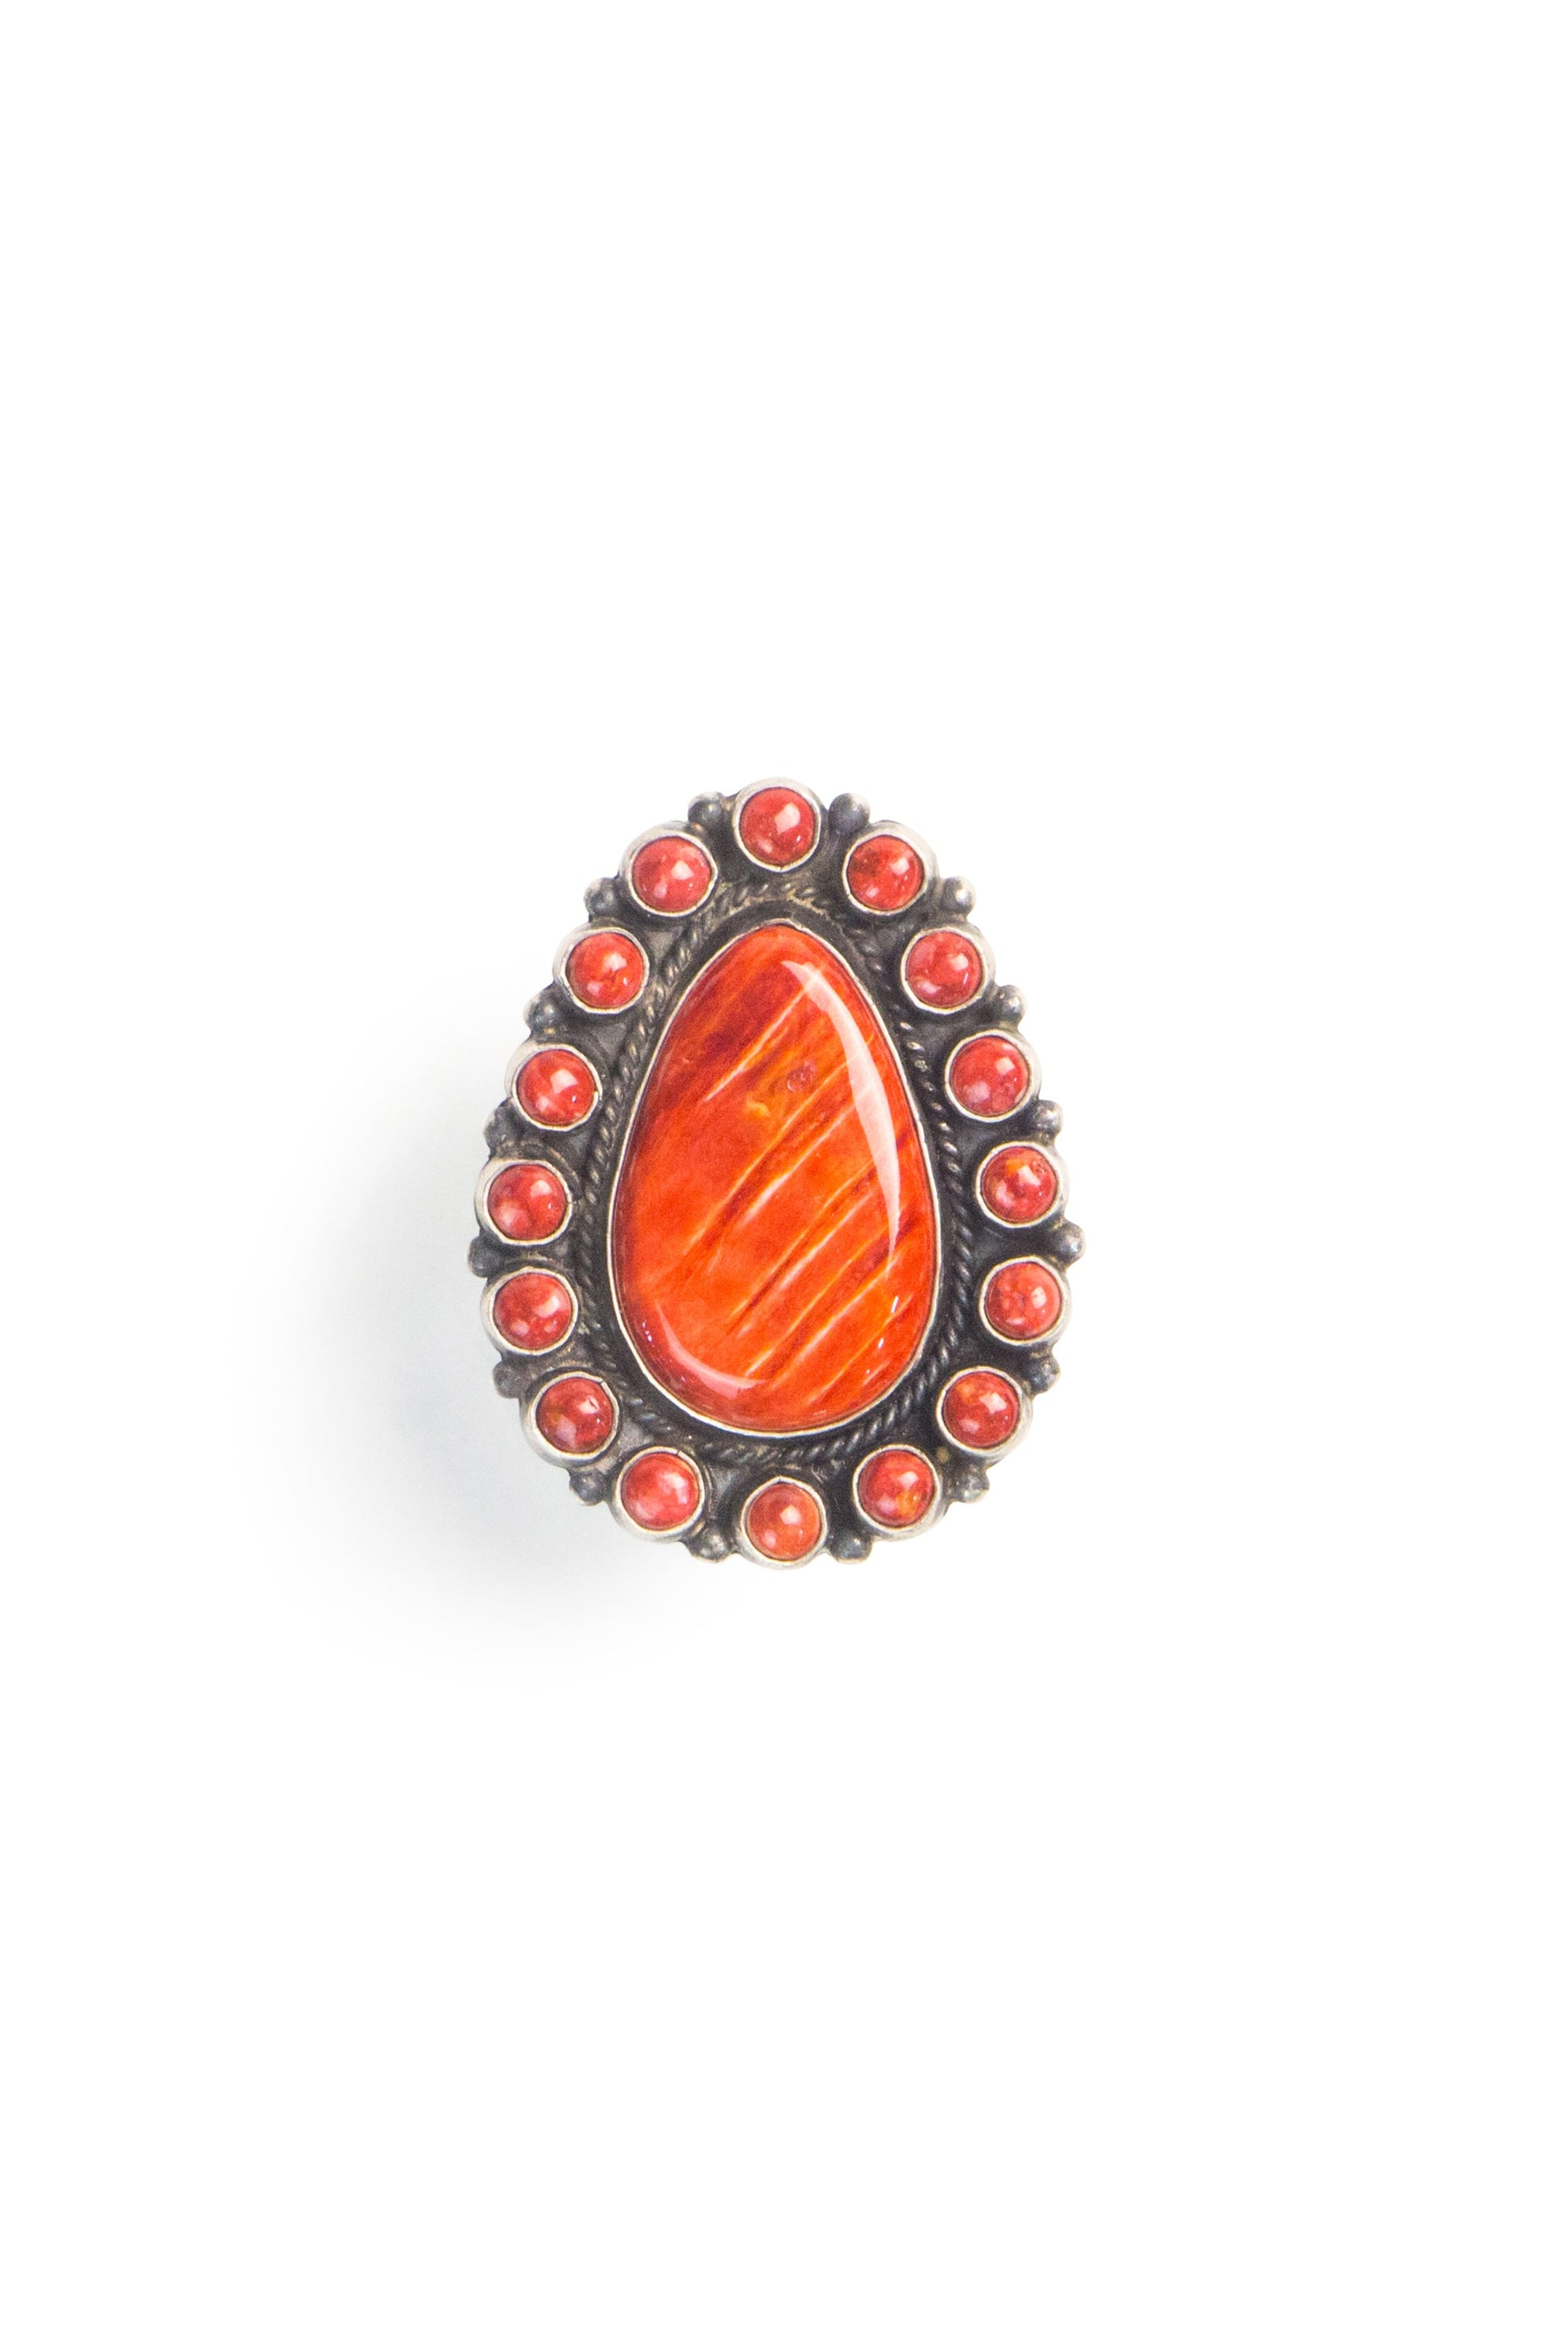 Ring, Cluster, Orange Spiny Oyster,Contemporary 569